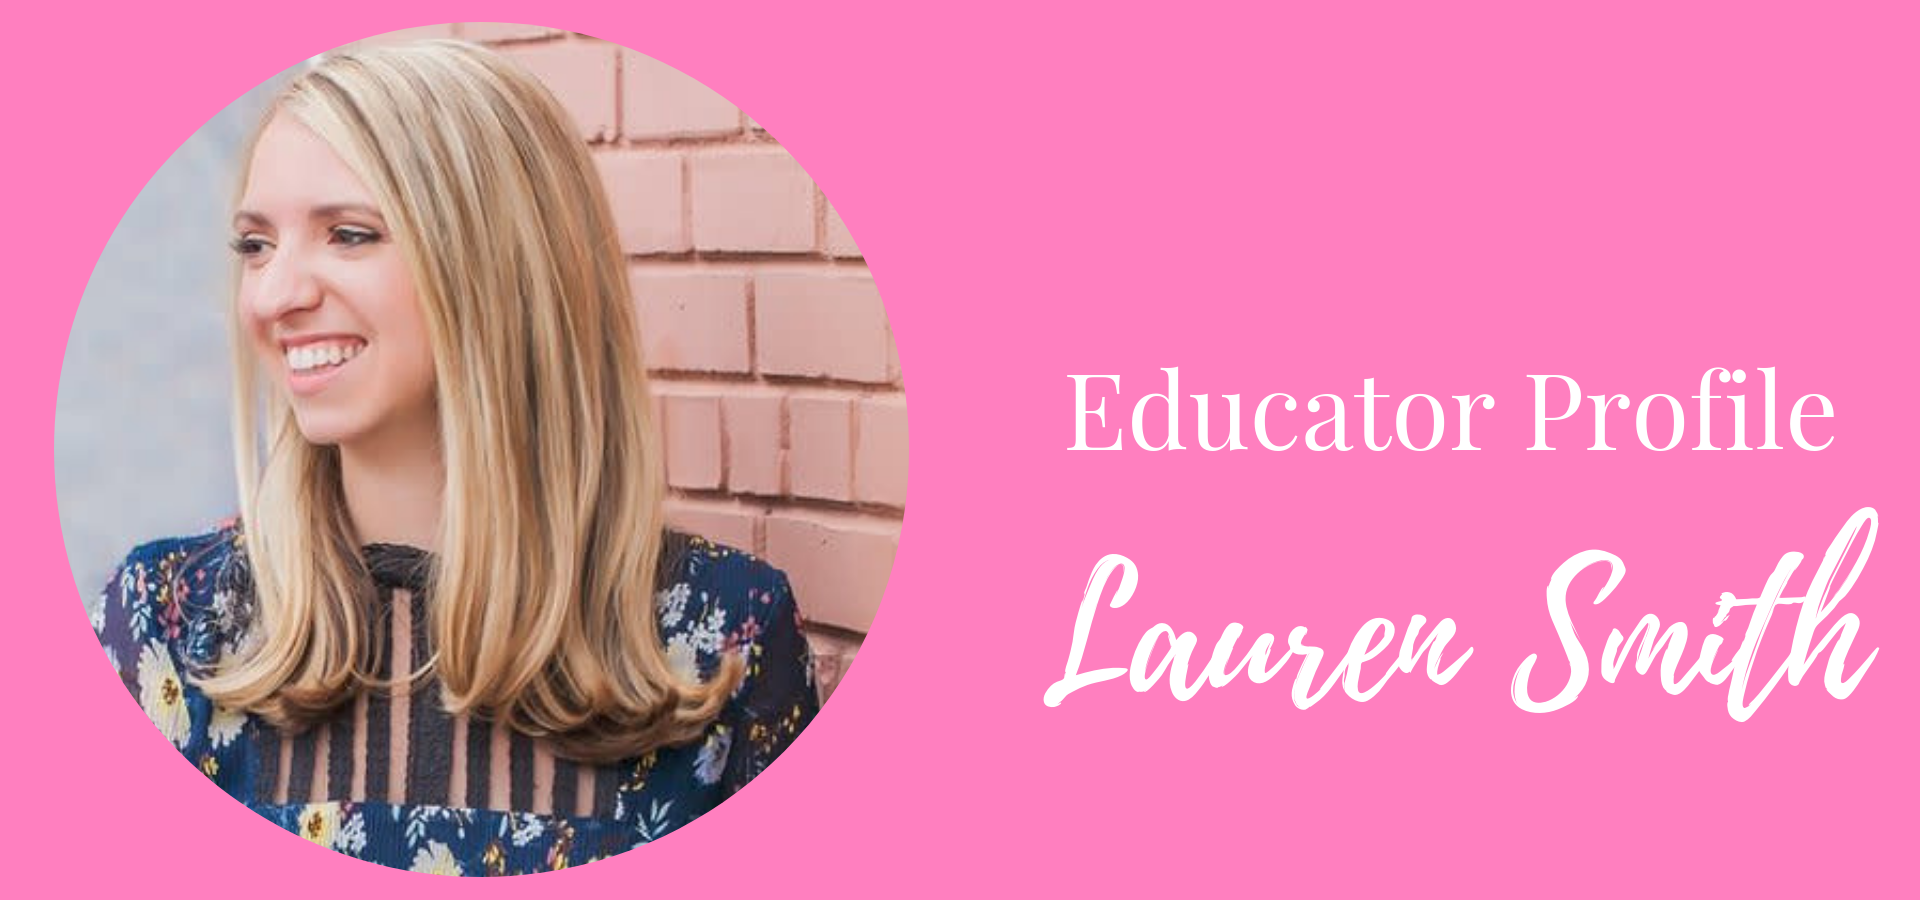 Educator Profile for Lauren Smith from Prints and Prosecco